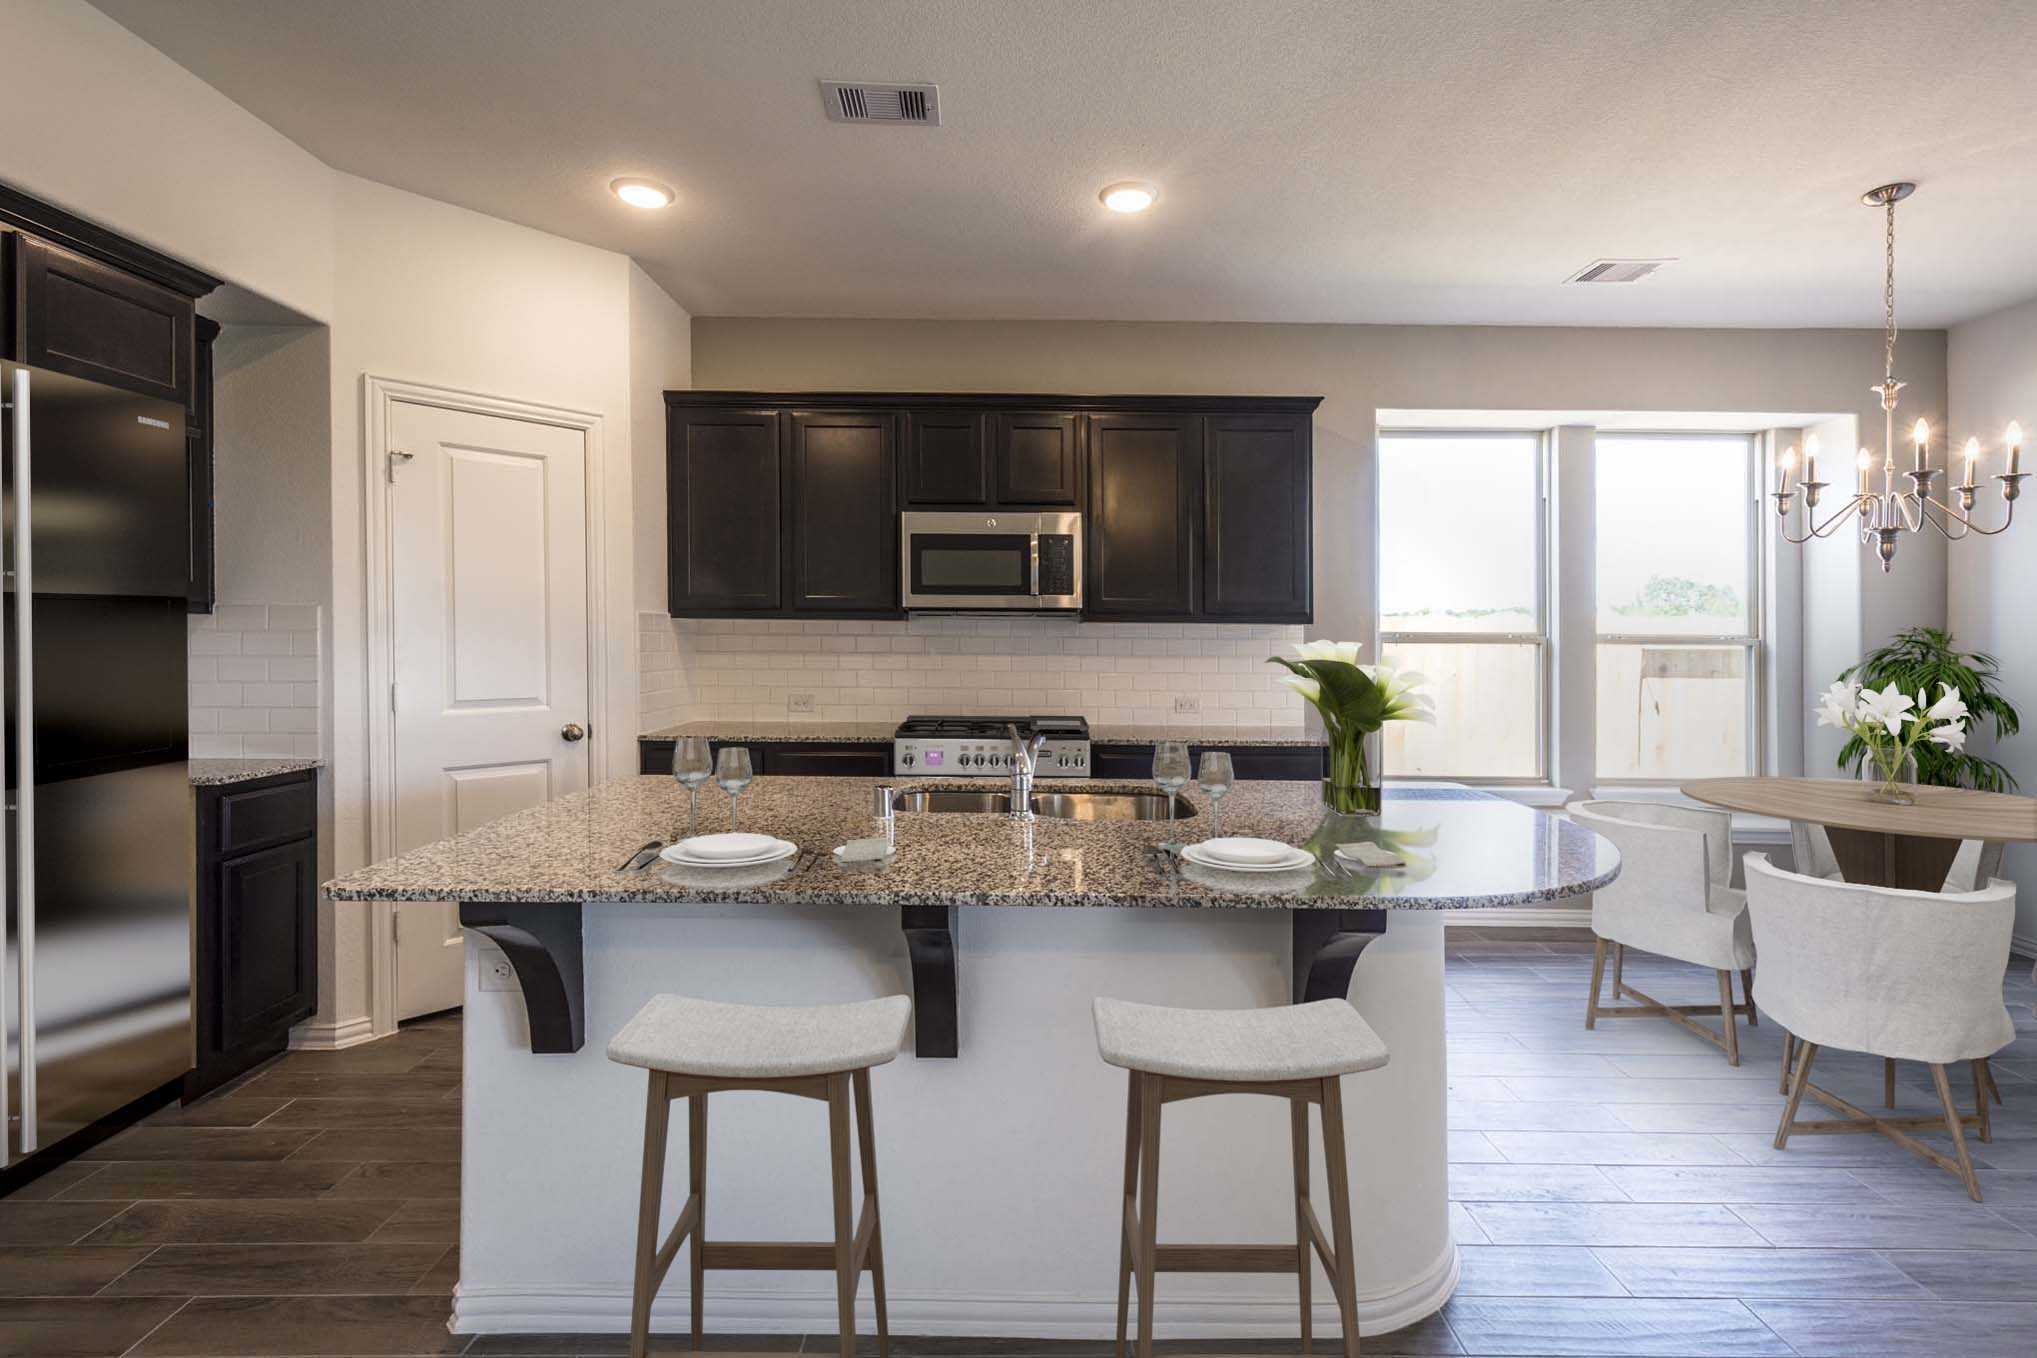 Kitchen featured in the Plan Lyndhurst By Highland Homes in Houston, TX